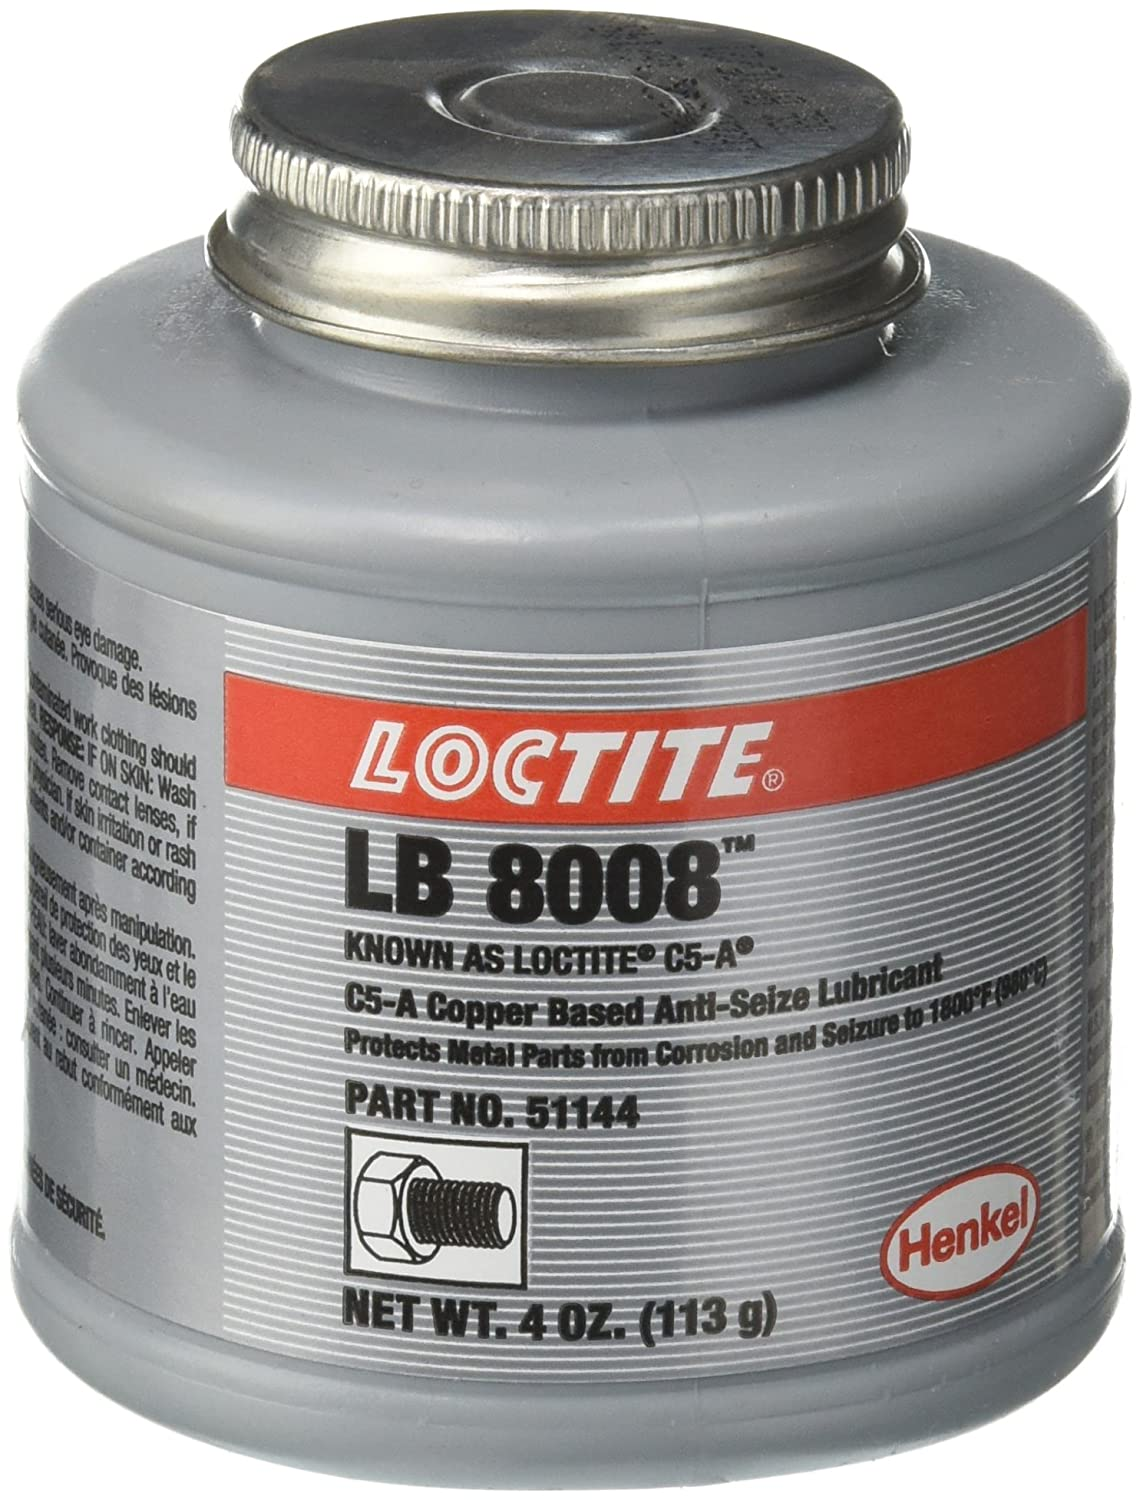 SEPTLS44251144 - Loctite C5-A Copper Based Anti-Seize Lubricant - 51144 LOC51144